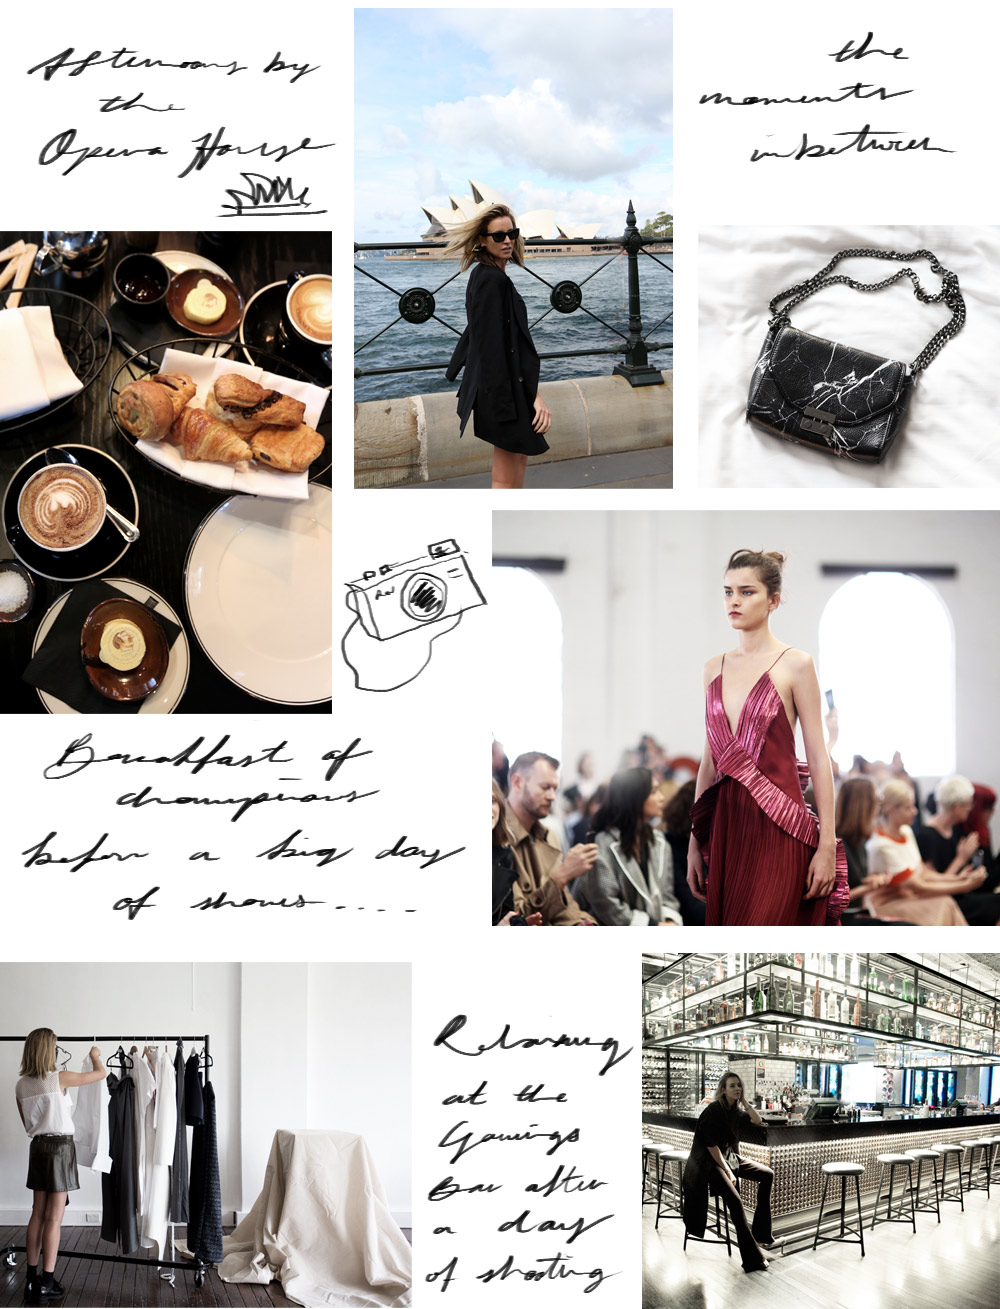 QT Hotel, Sydney, MBFWA, mercedes benz fashion week, australia, michael lo sordo, photo diary, oracle fox, outfit, street style fashion